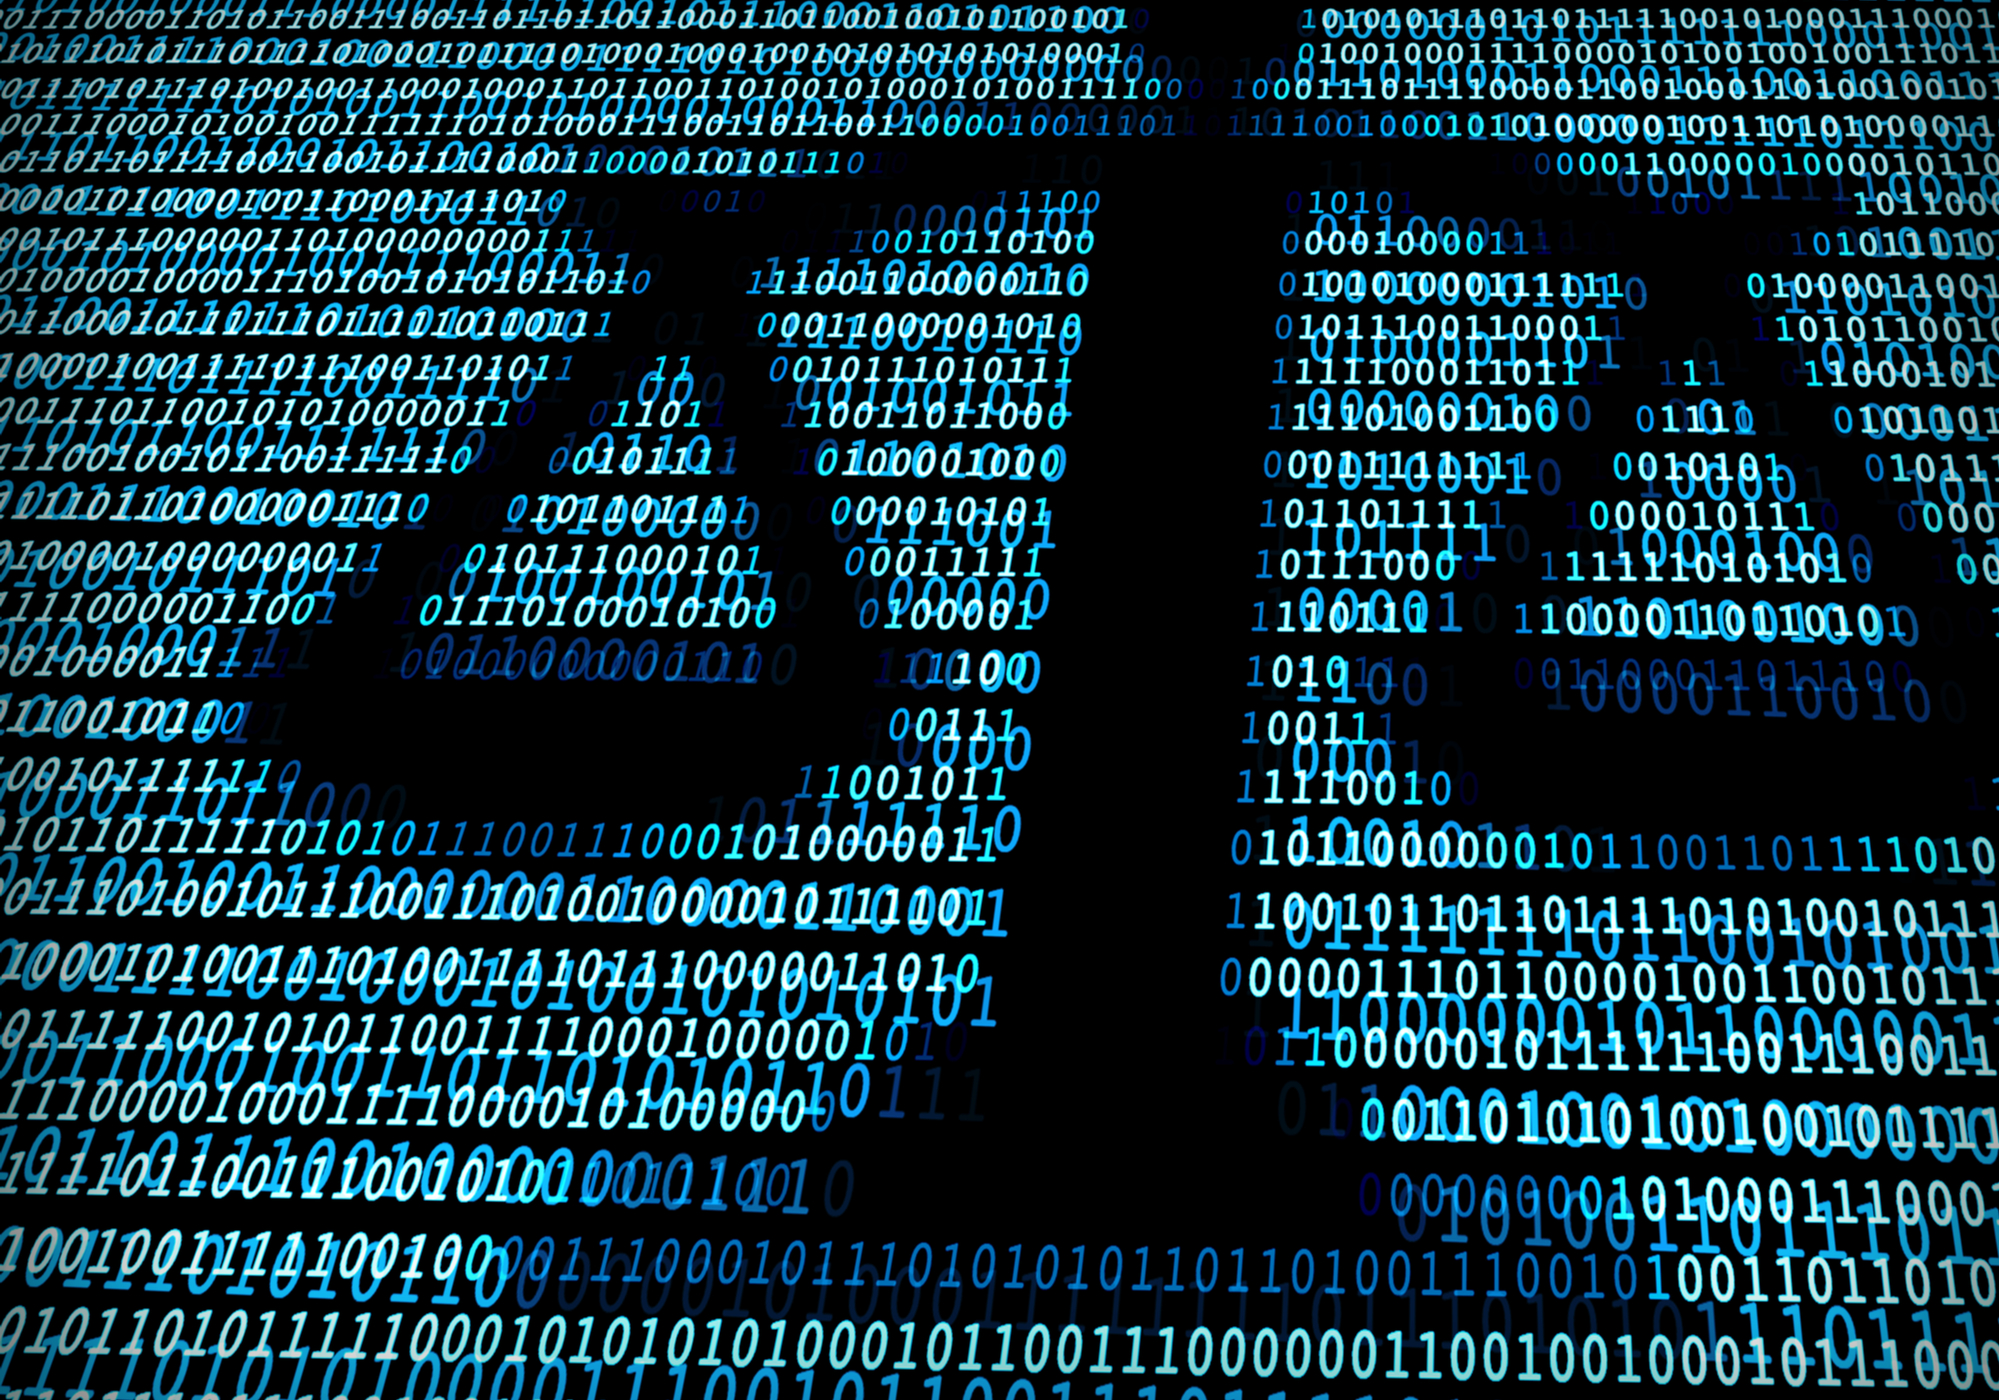 US Supreme Court curtails scope of hacking law